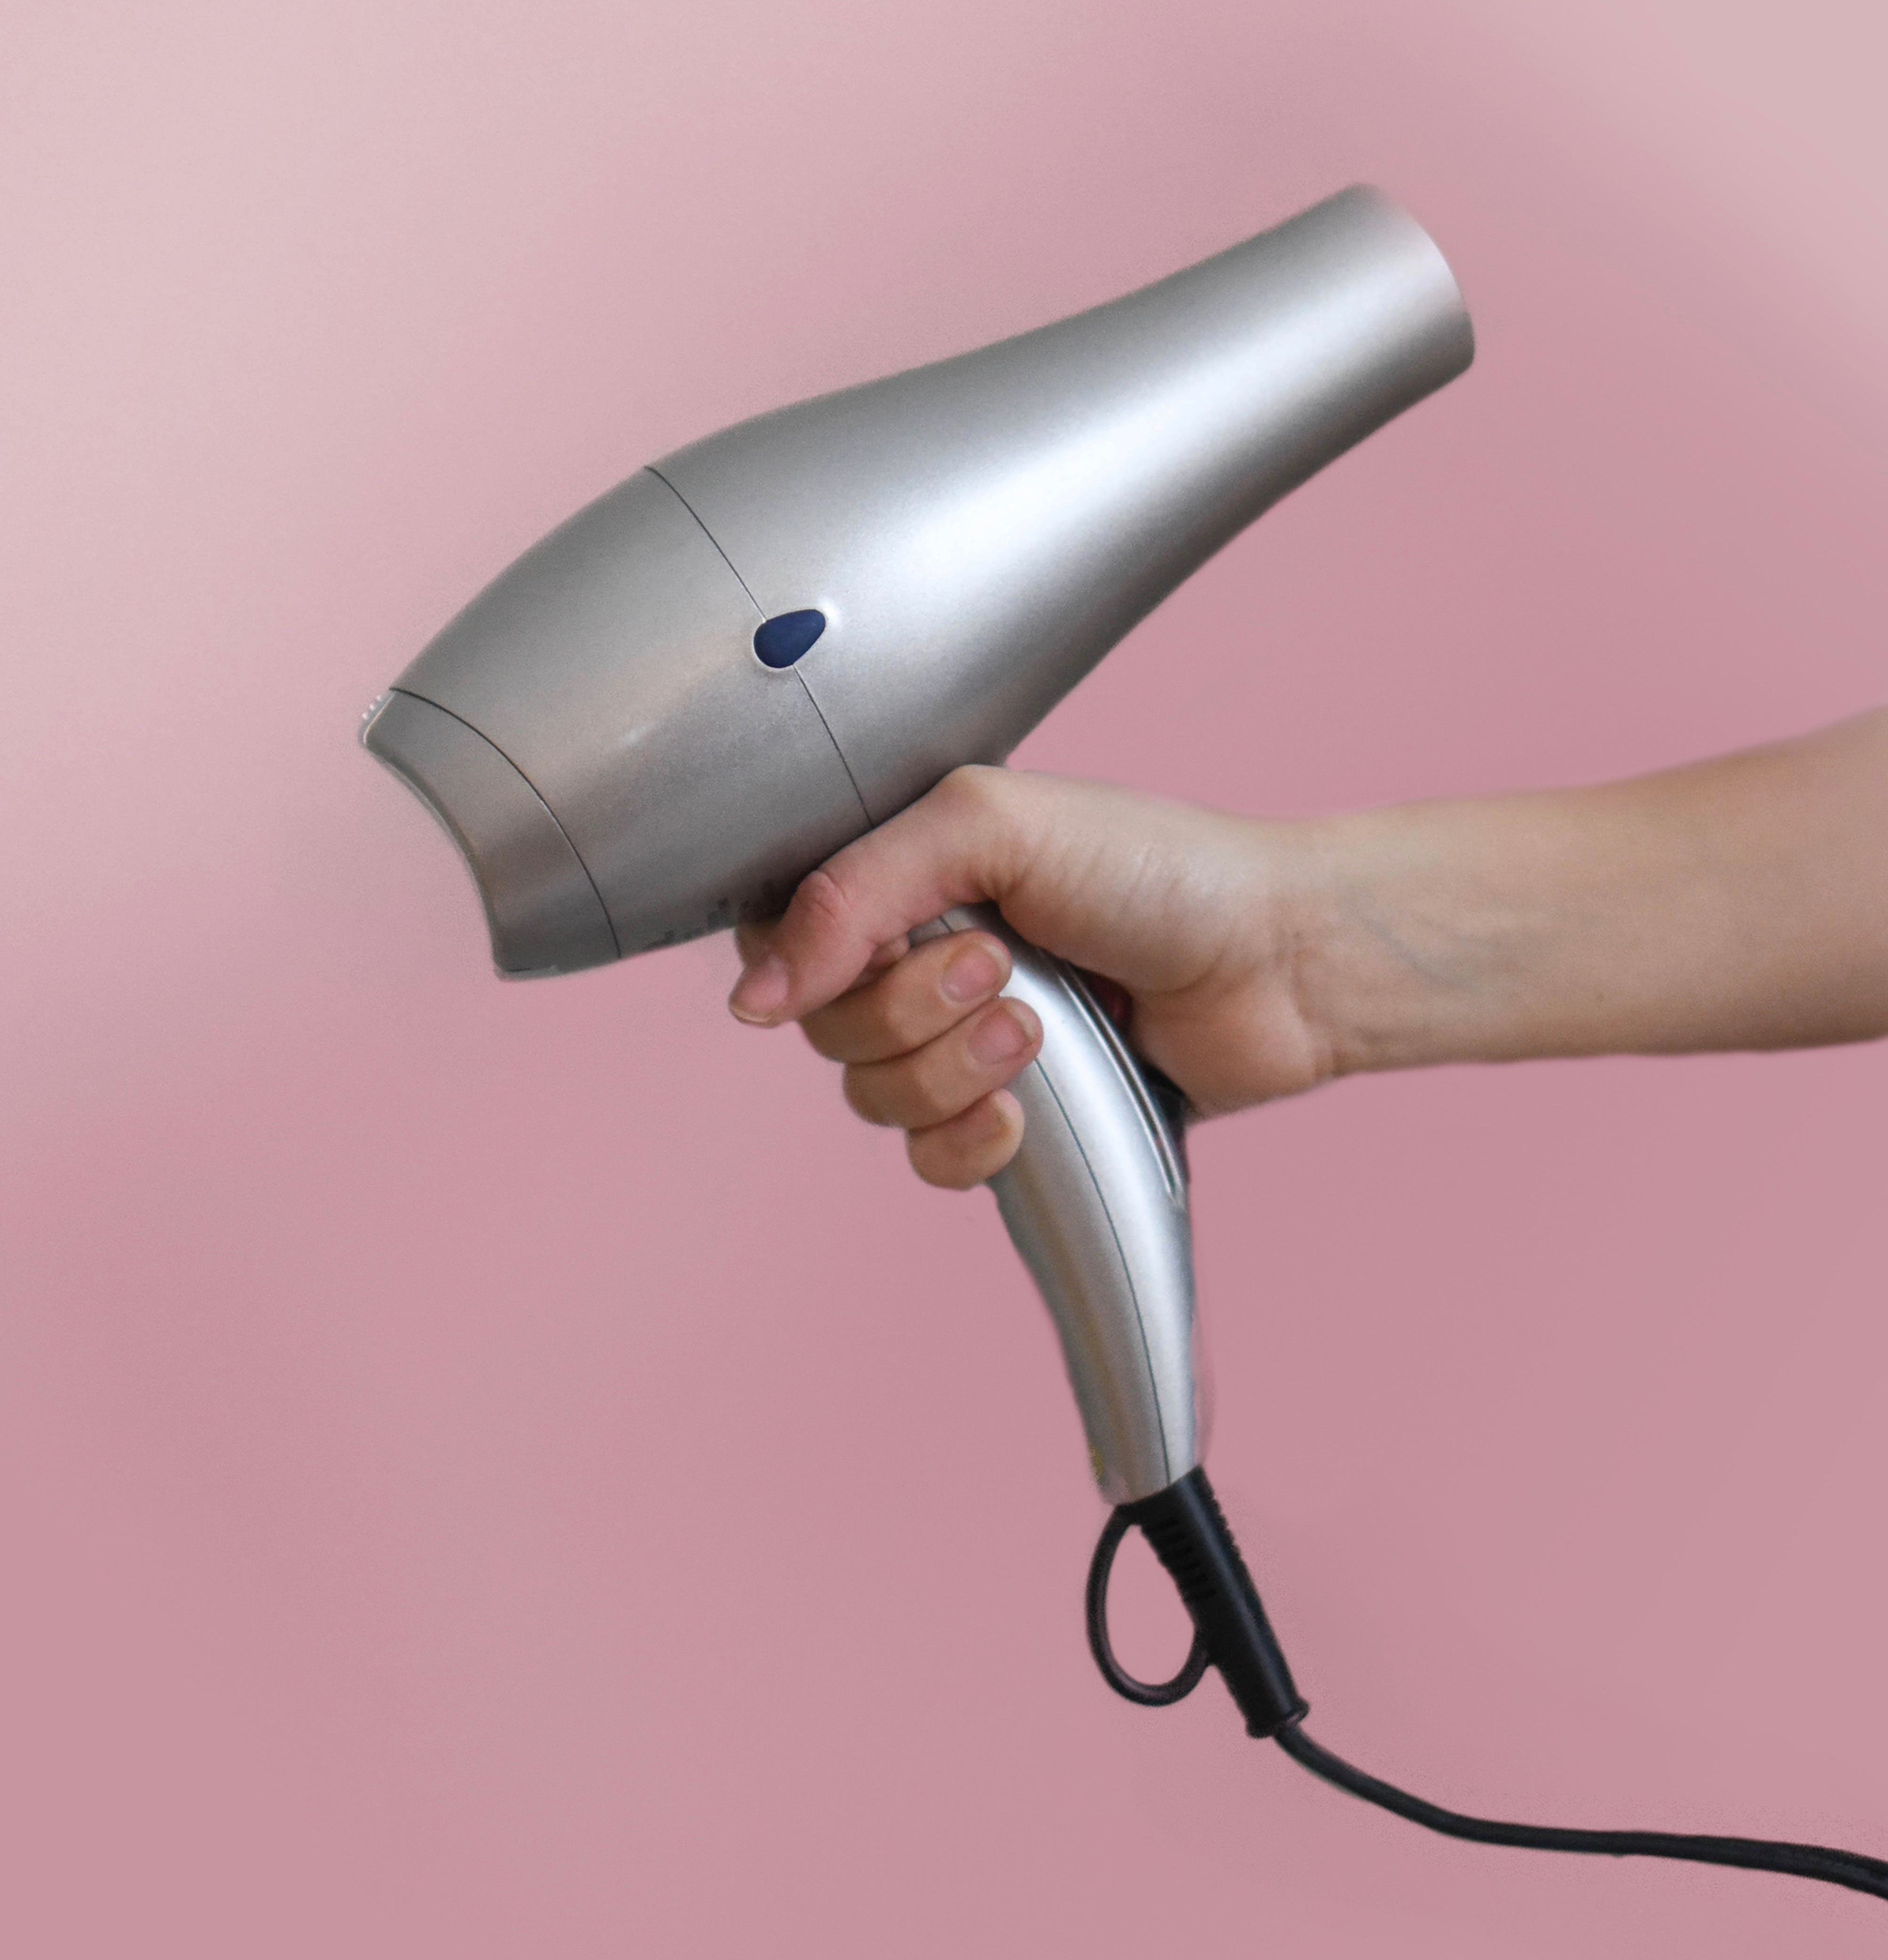 Prevent fly-aways with a cooler setting on the hairdryer